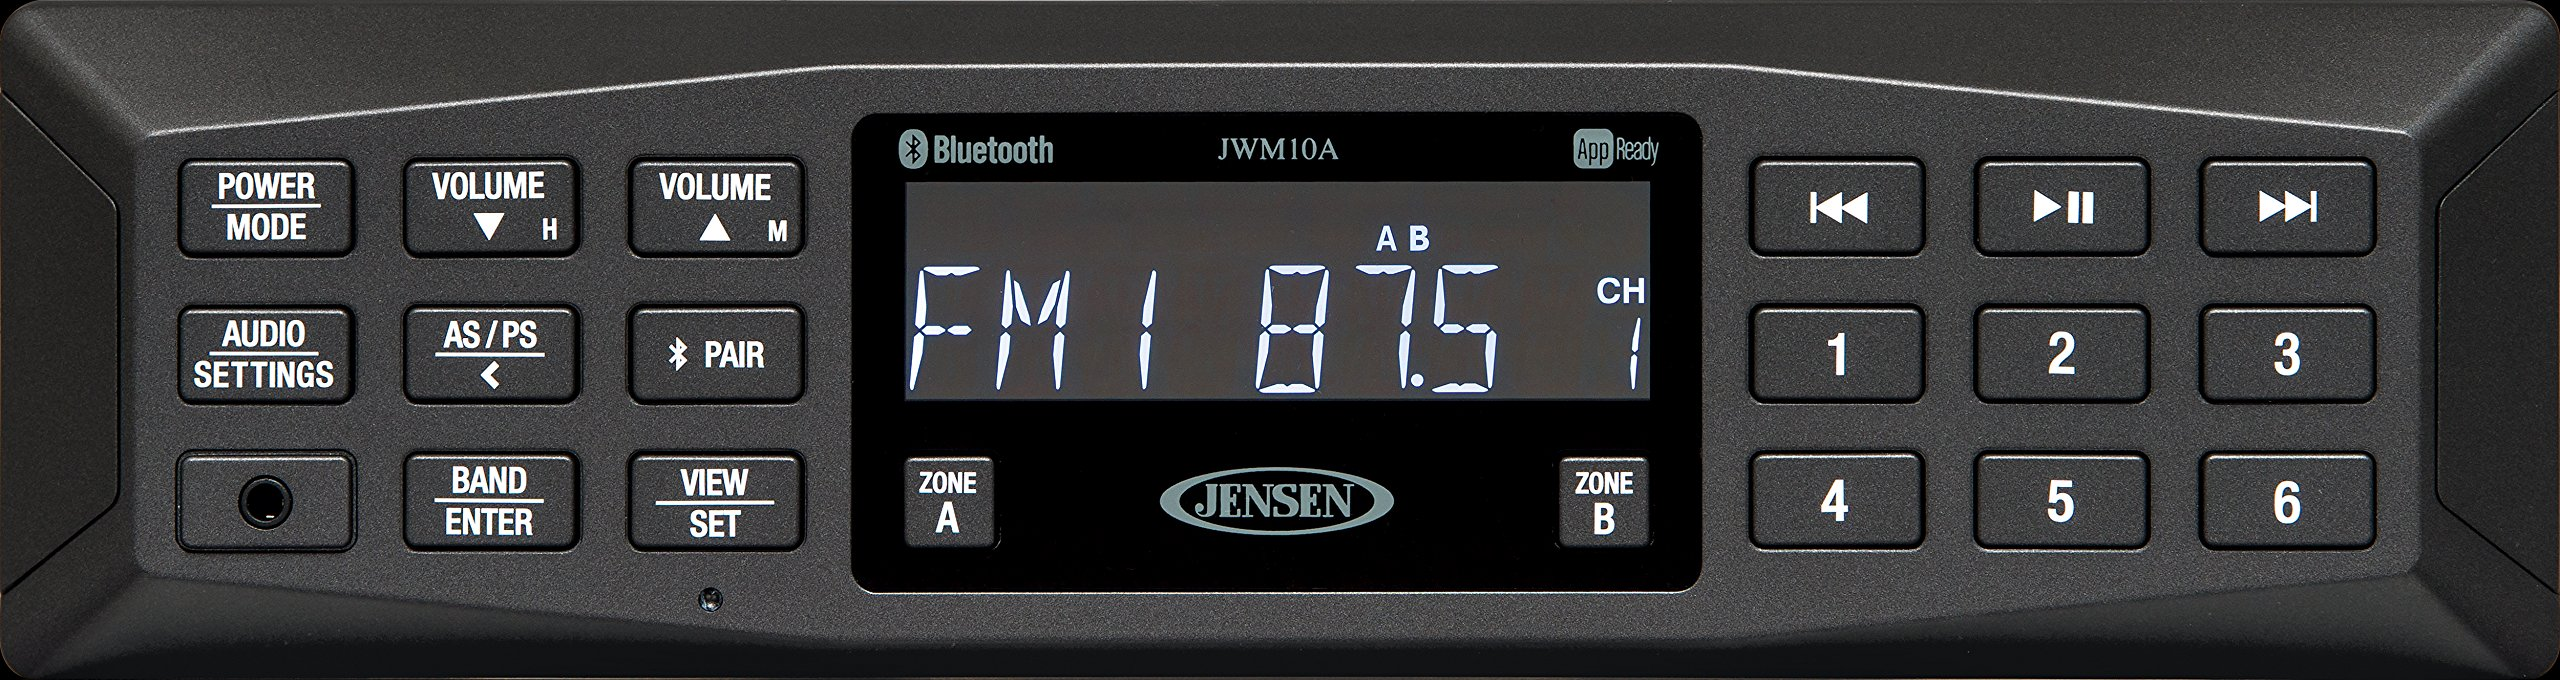 Jensen JWM10A AM/FM | AUX | Bluetooth | APP Ready Wallmount Stereo, 4 Channels 6W per CH, 30 Programmable Station Presets (18FM/12AM), Receives Bluetooth Audio (A2DP) and Controls (AVRCP) from Devices